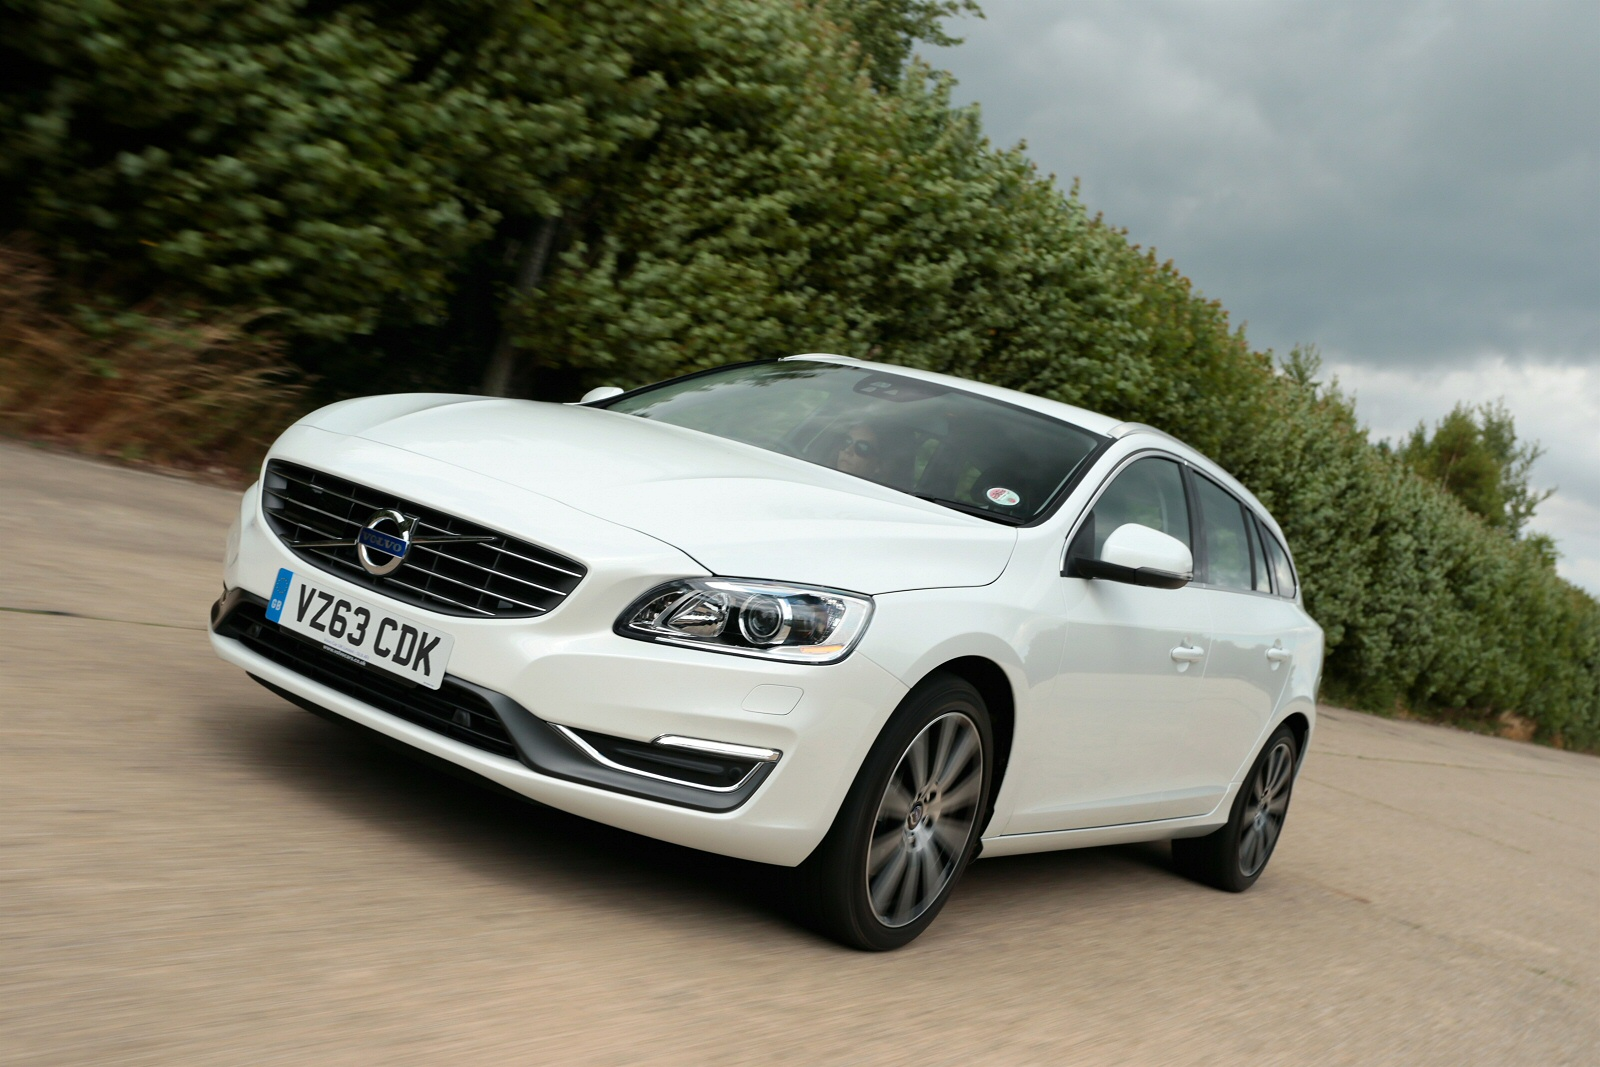 new volvo v60 d4 190 business edition 5dr diesel estate for sale bristol street. Black Bedroom Furniture Sets. Home Design Ideas